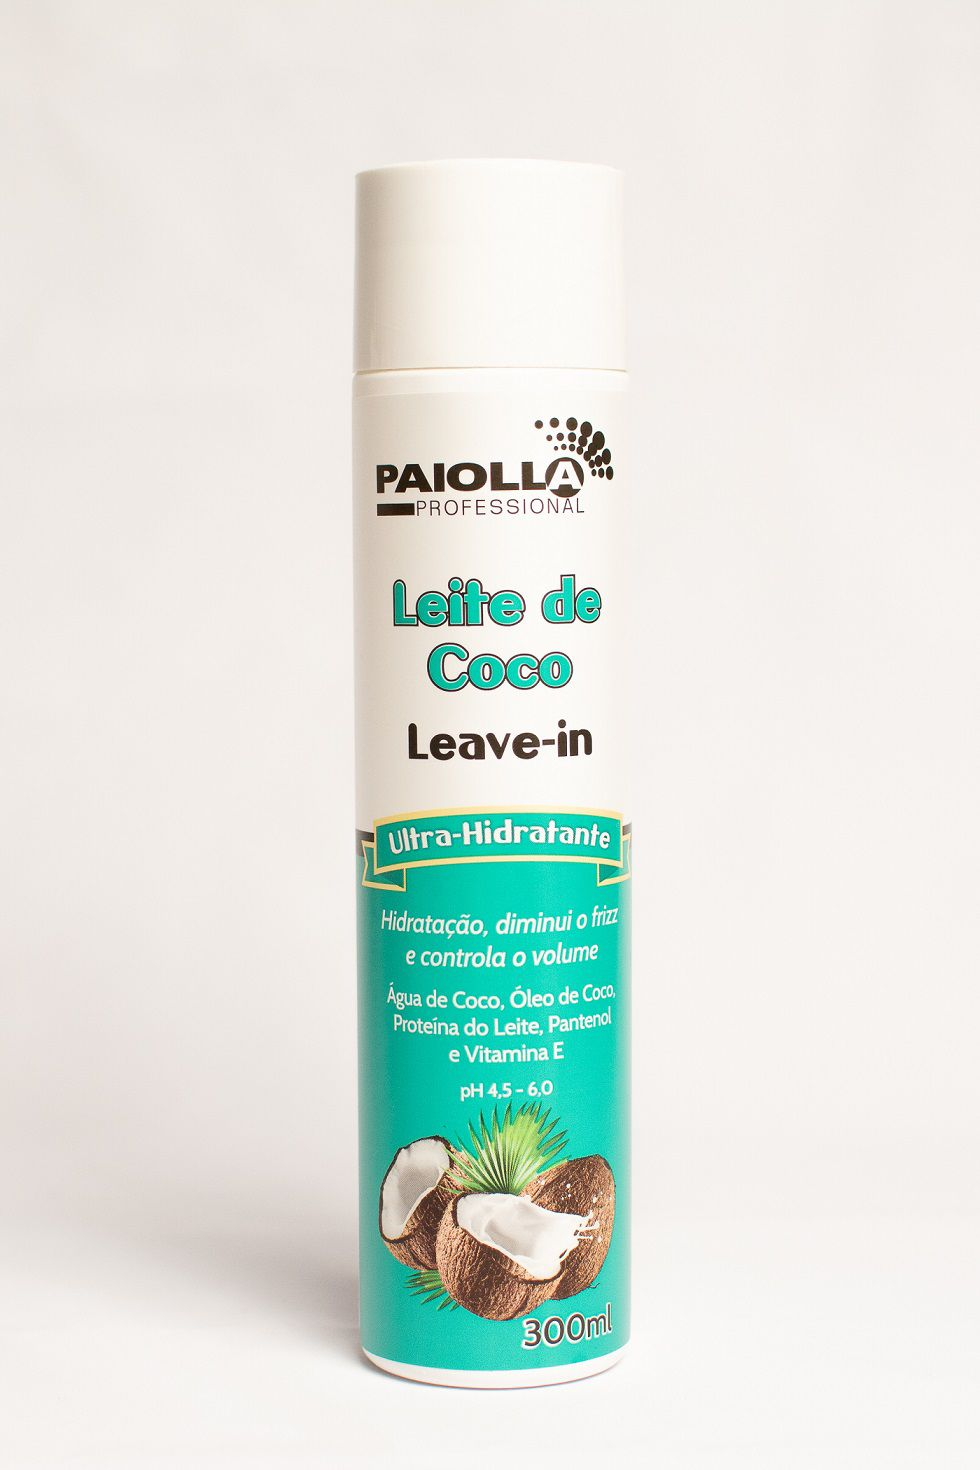 Leave-in - Leite de Coco Capilar - 300ml